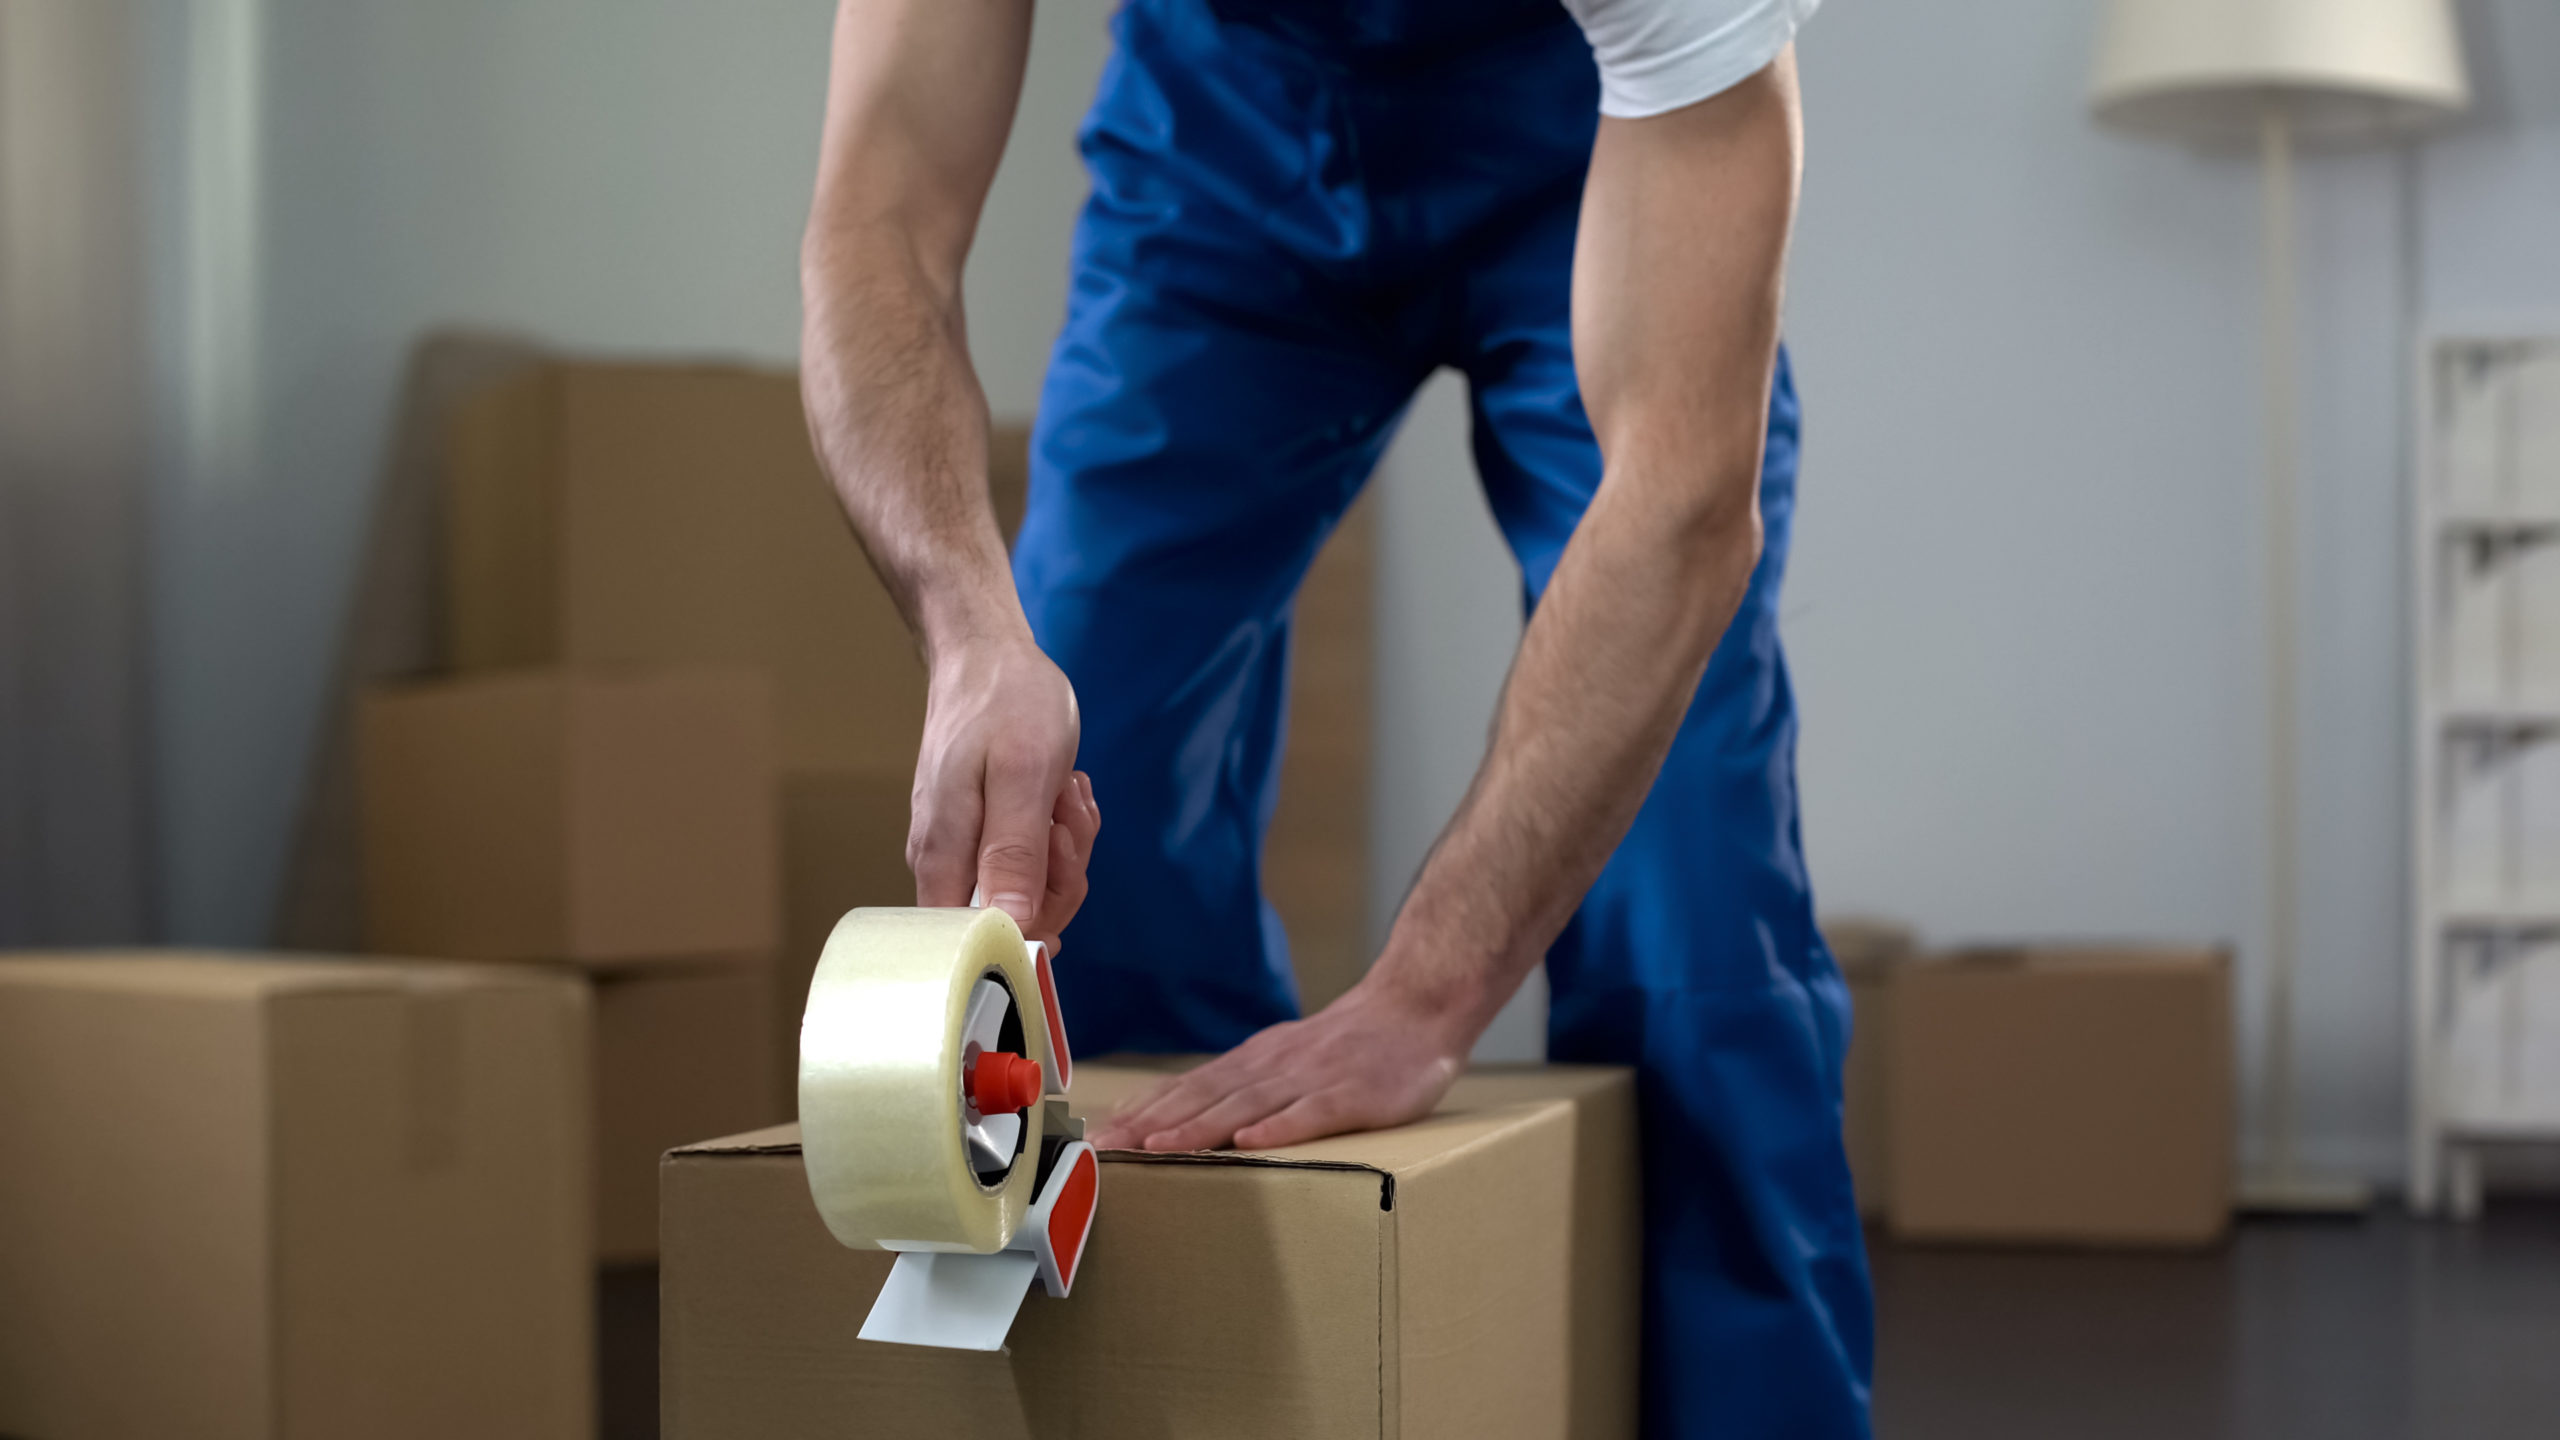 Child relocation concept. Moving company worker packing cardboard boxes, quality delivery services.